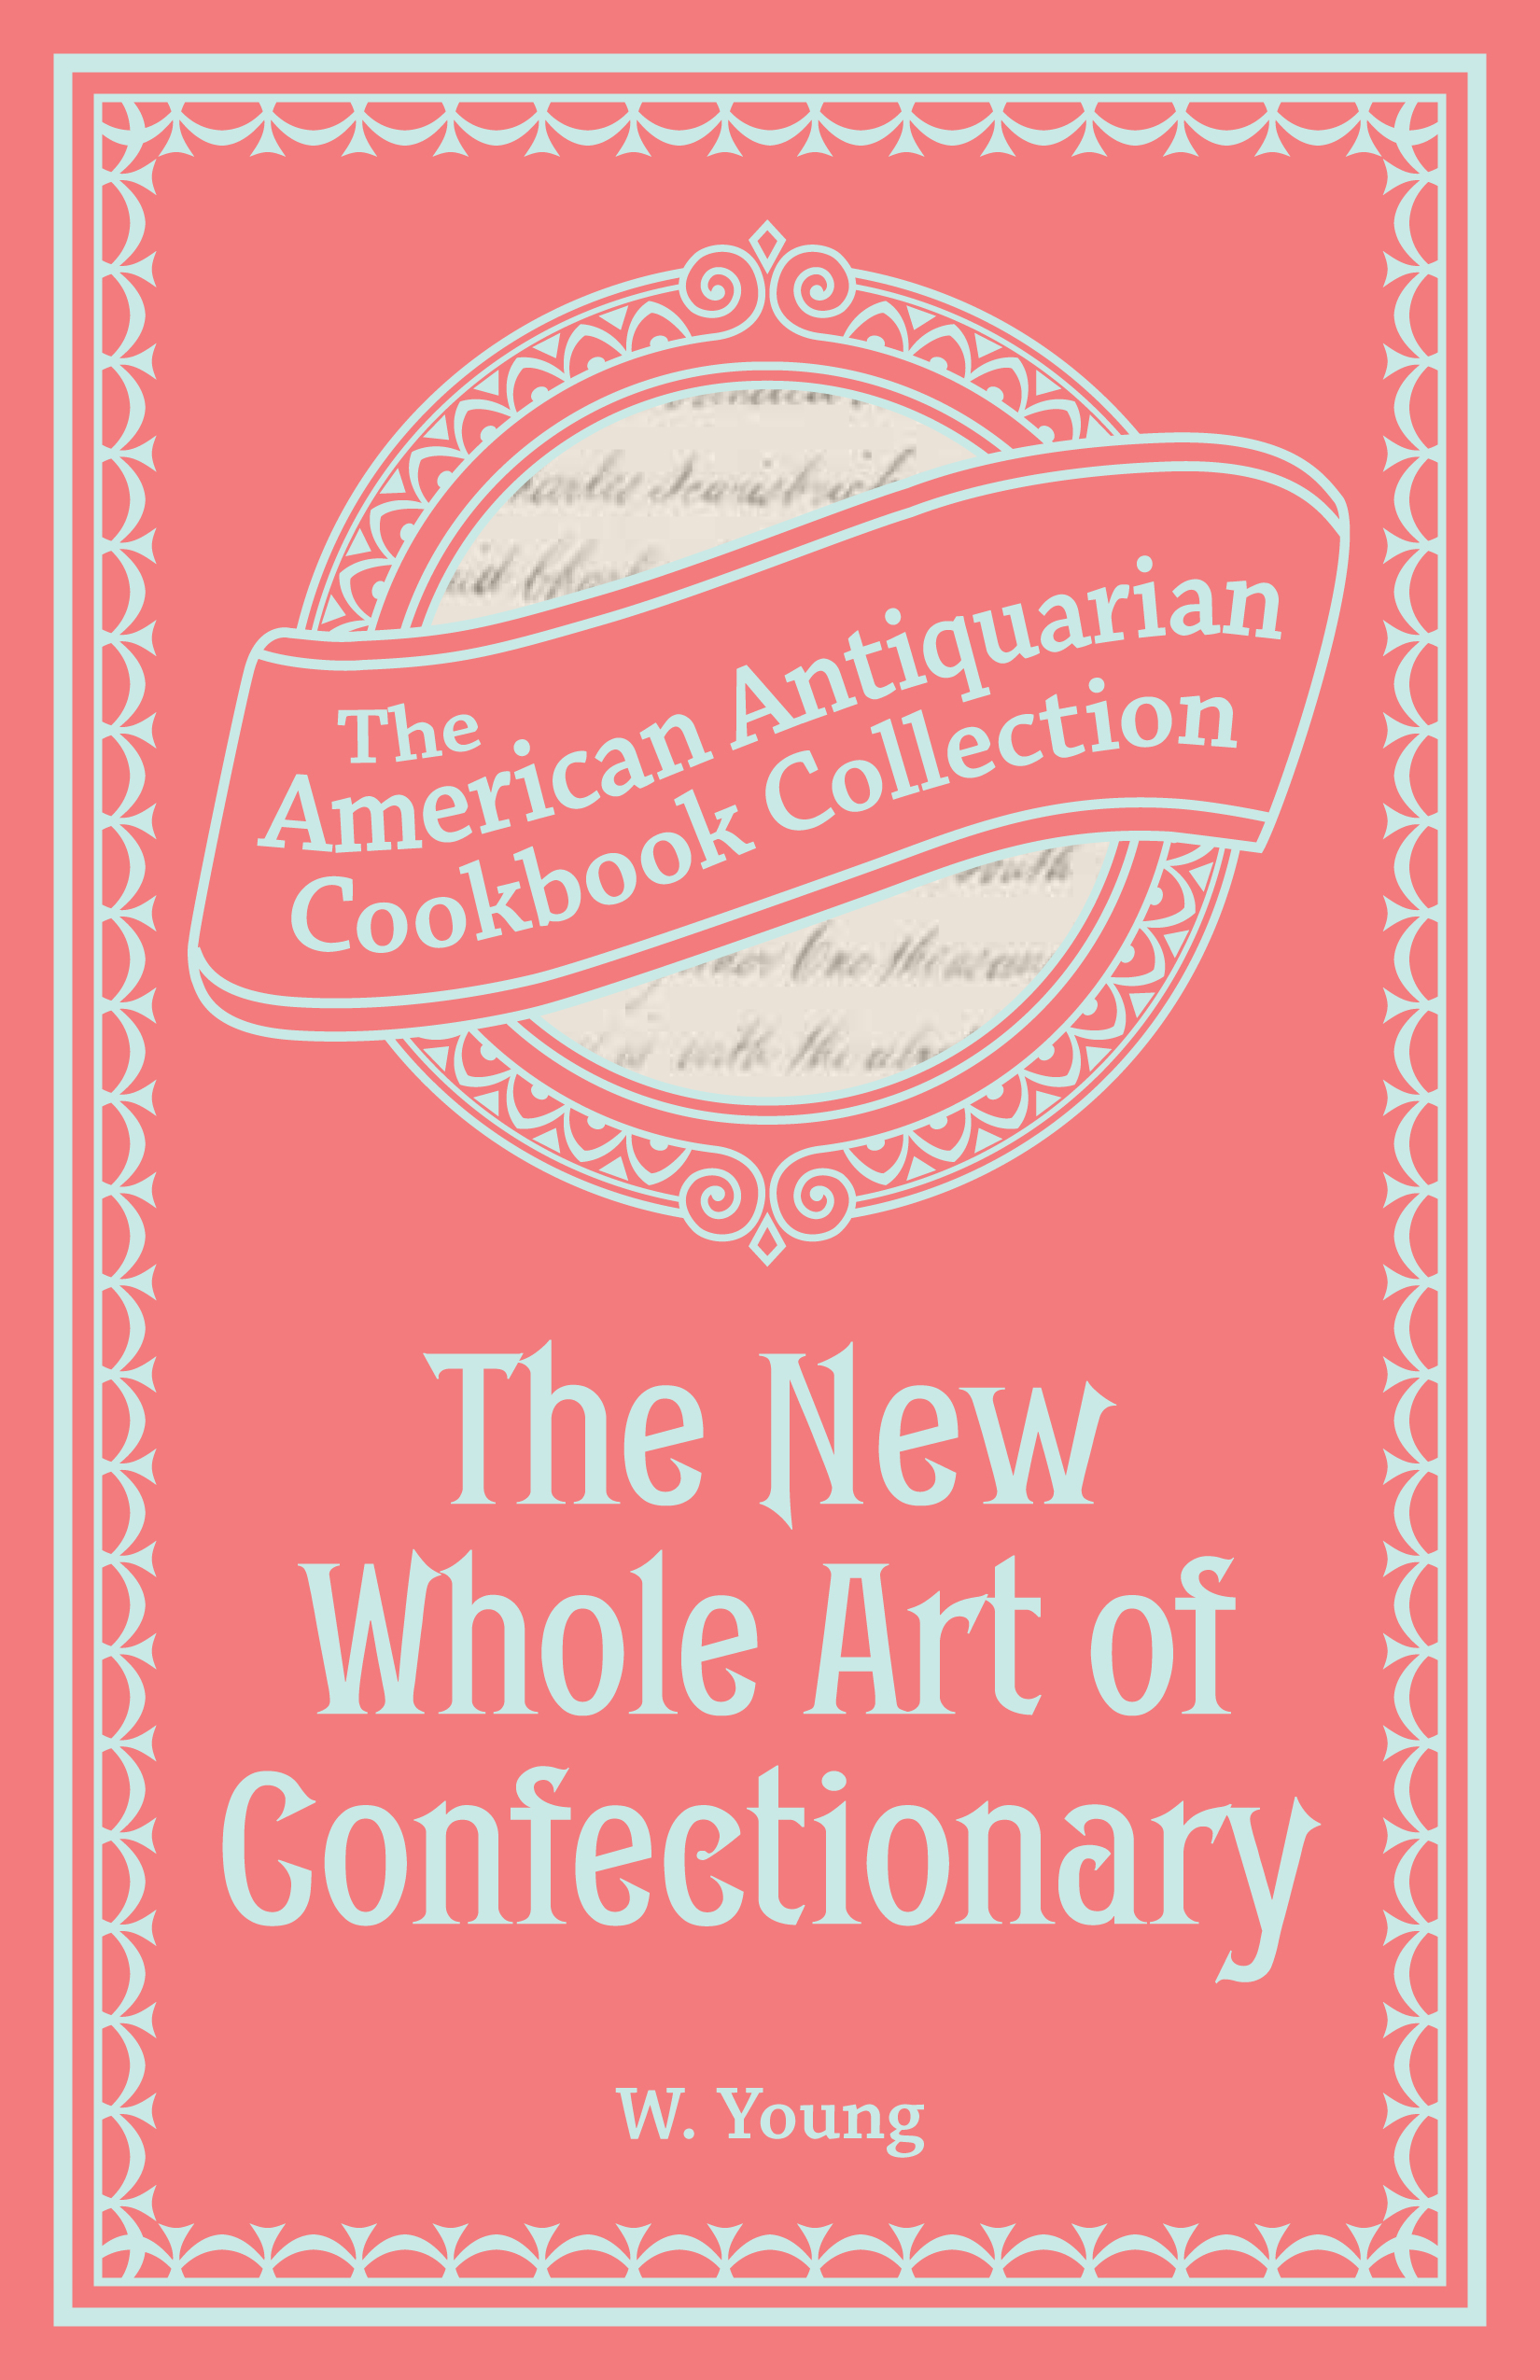 The New Whole Art of Confectionary